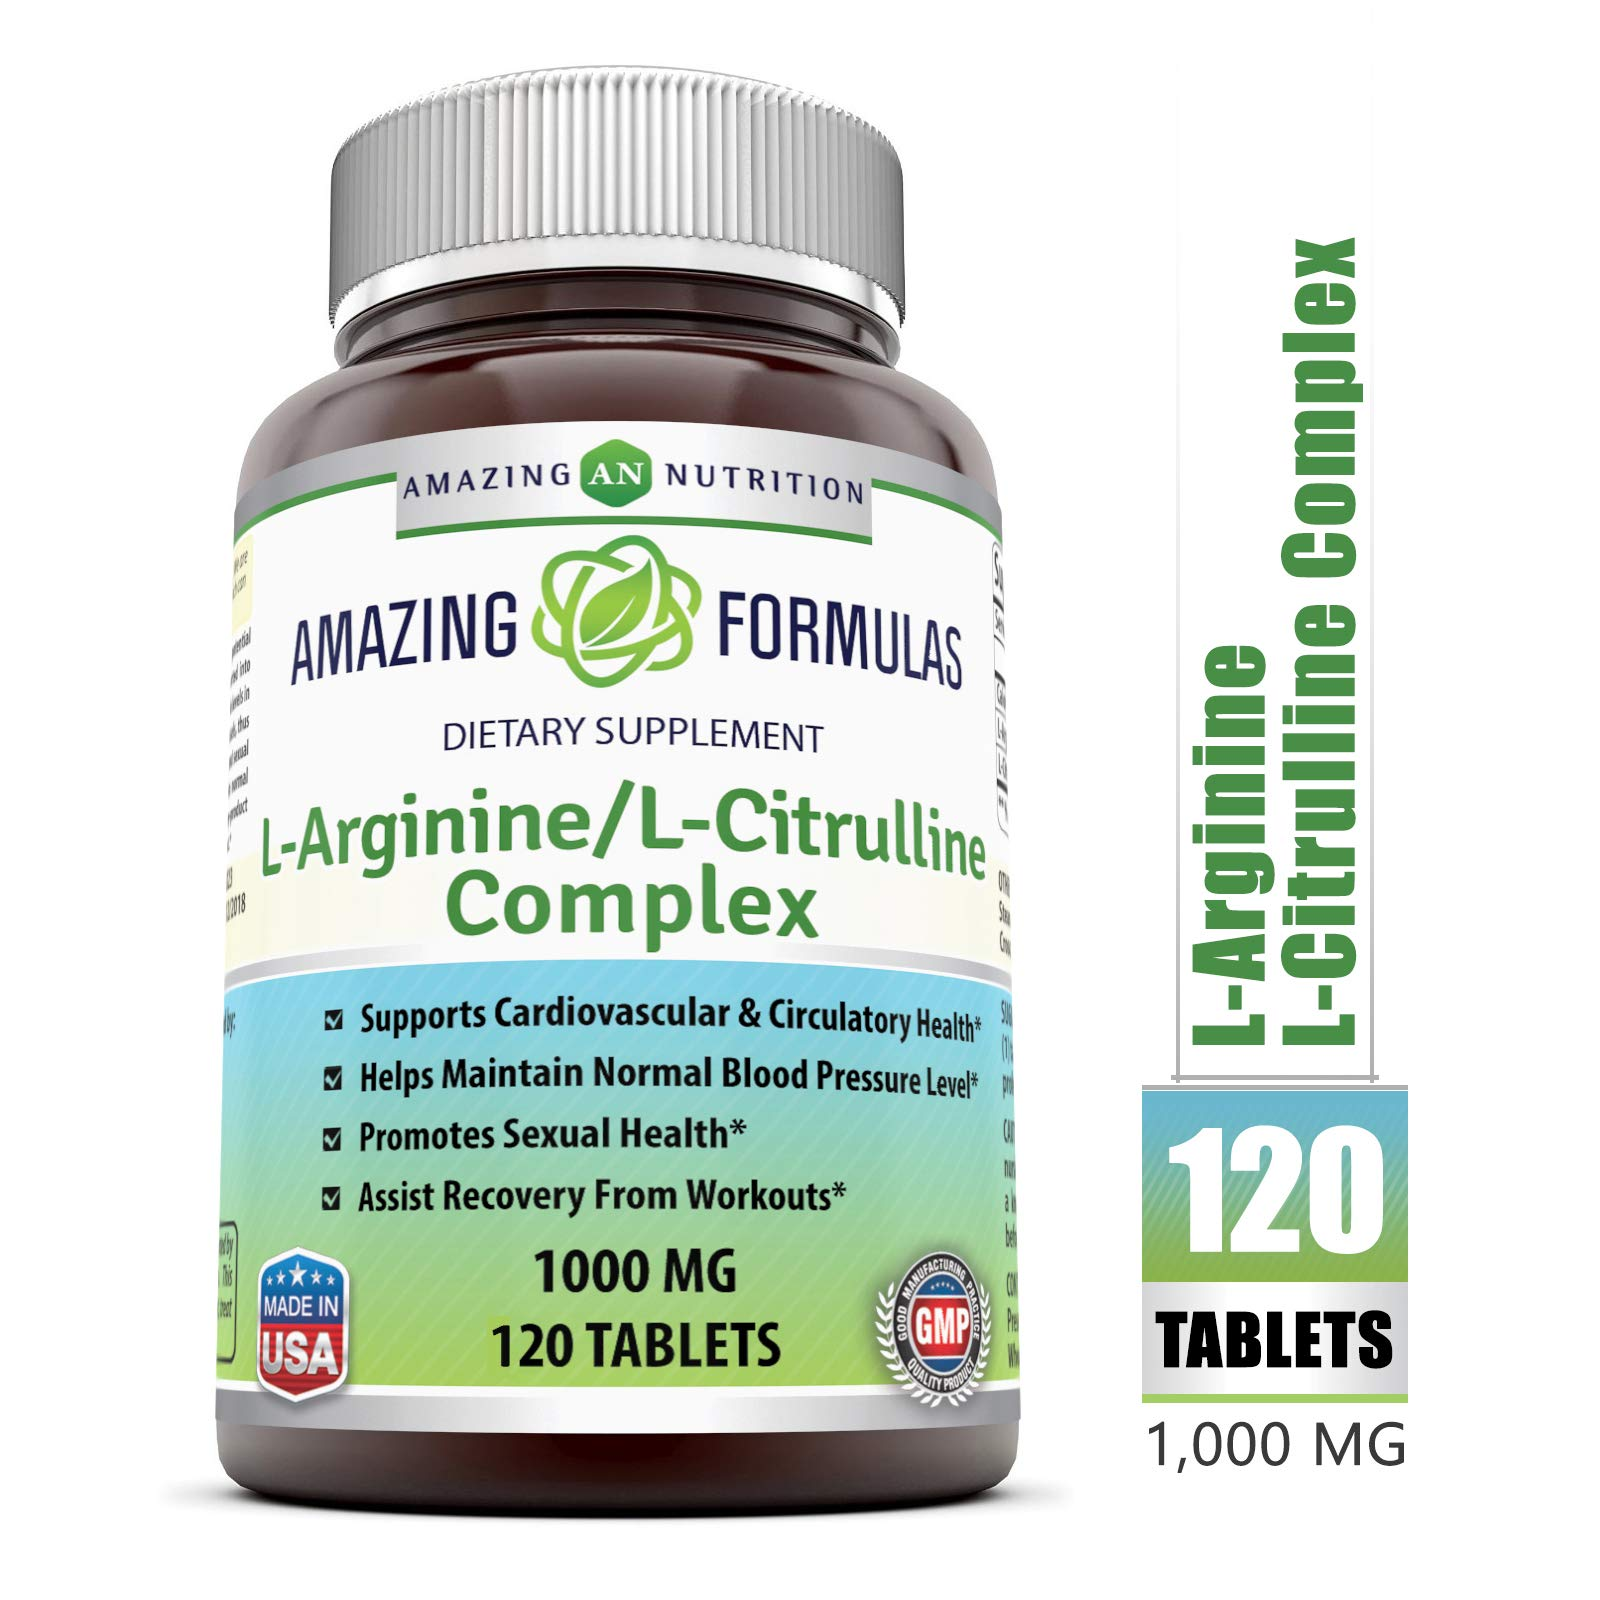 Amazing Nutrition L-Arginine/L-Citrulline Complex 1000 Mg* Combines Two Amino Acids with Potential Health Benefits * Supports Energy Production * Ads to Improve Athletic Performance (120 Tablets) by Amazing Nutrition